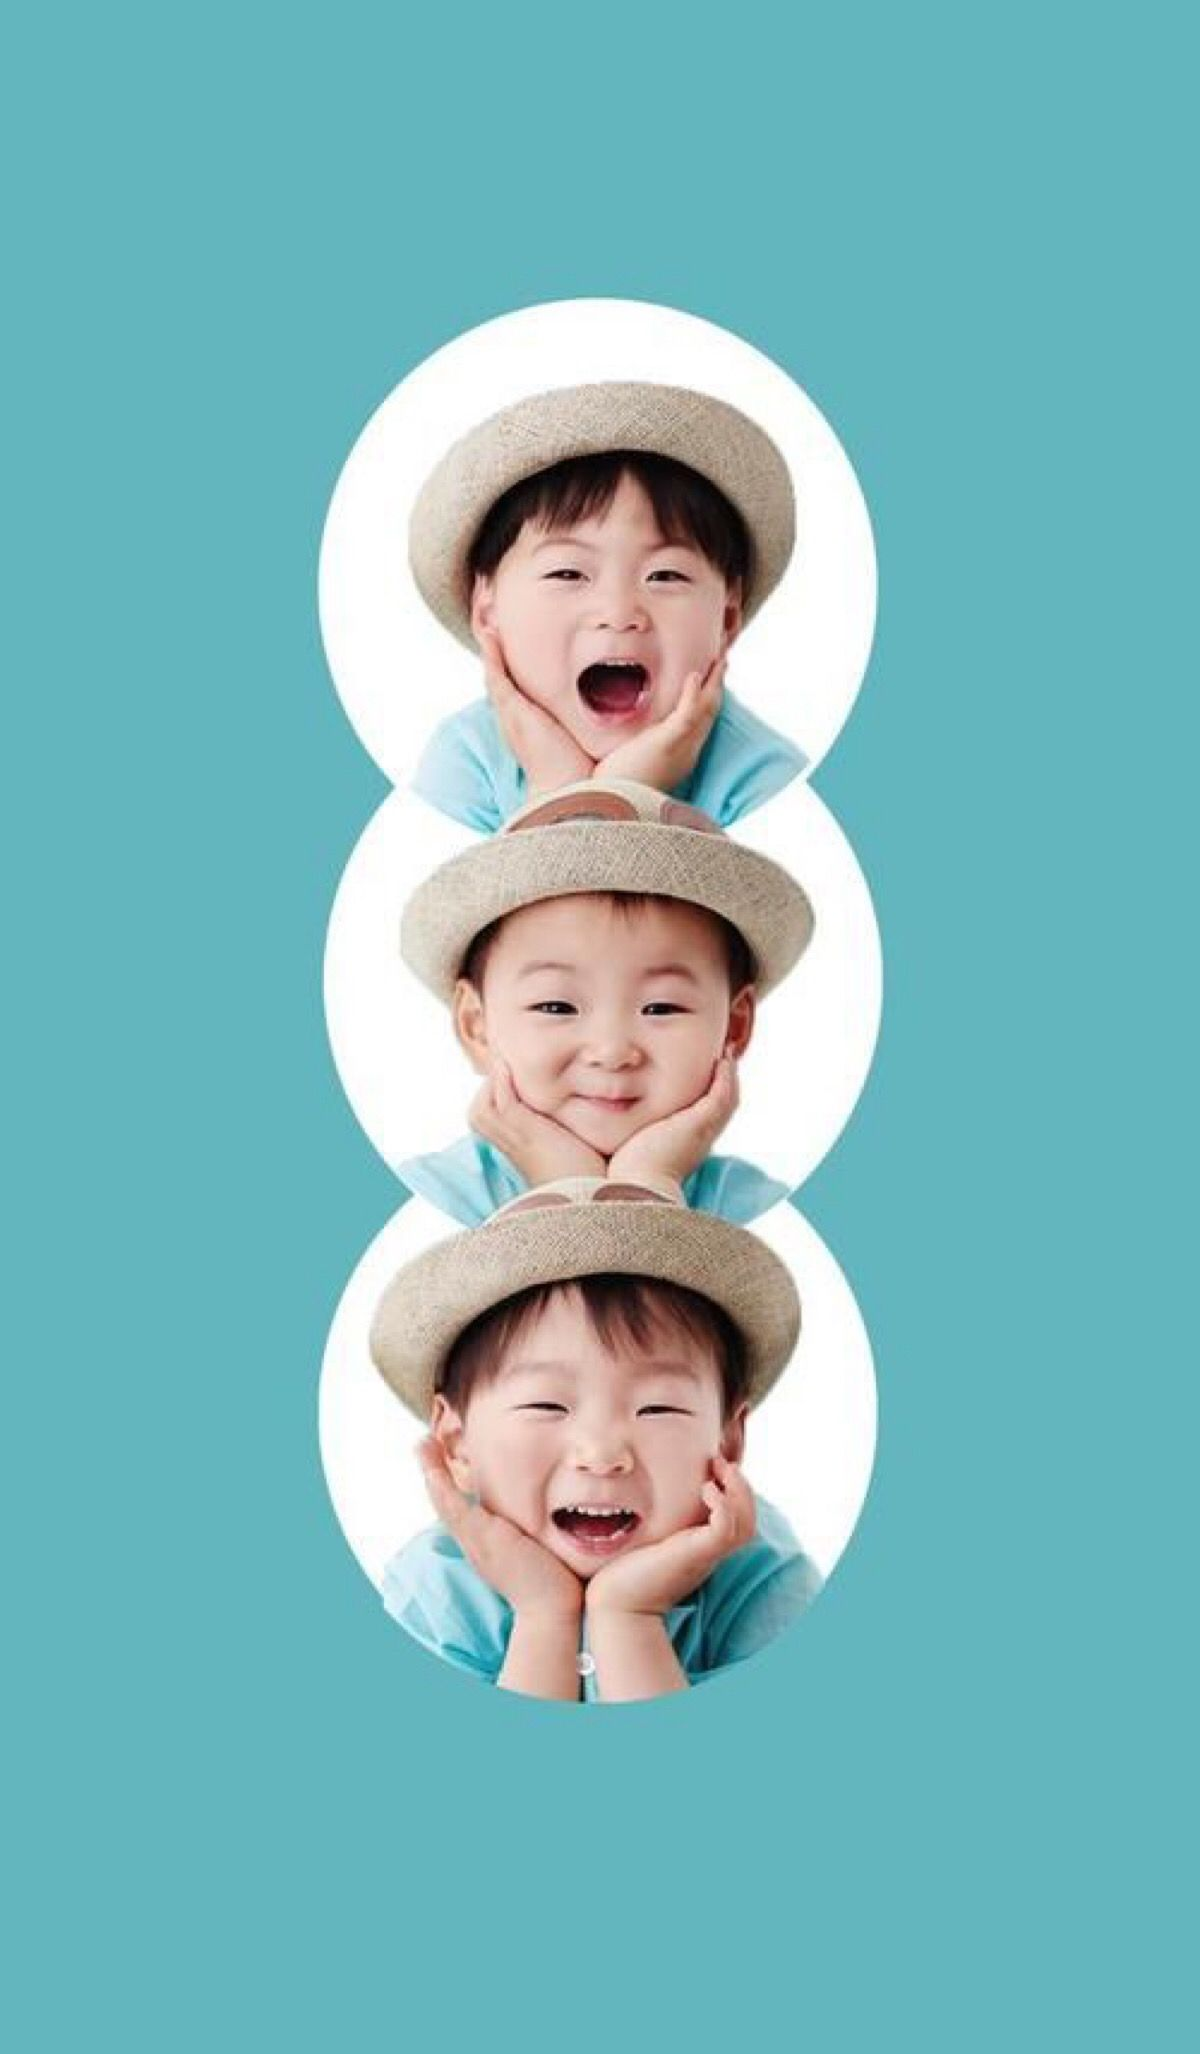 Pin By Mcdullry Mc On DaehanMingukManse Wallpaper Pinterest